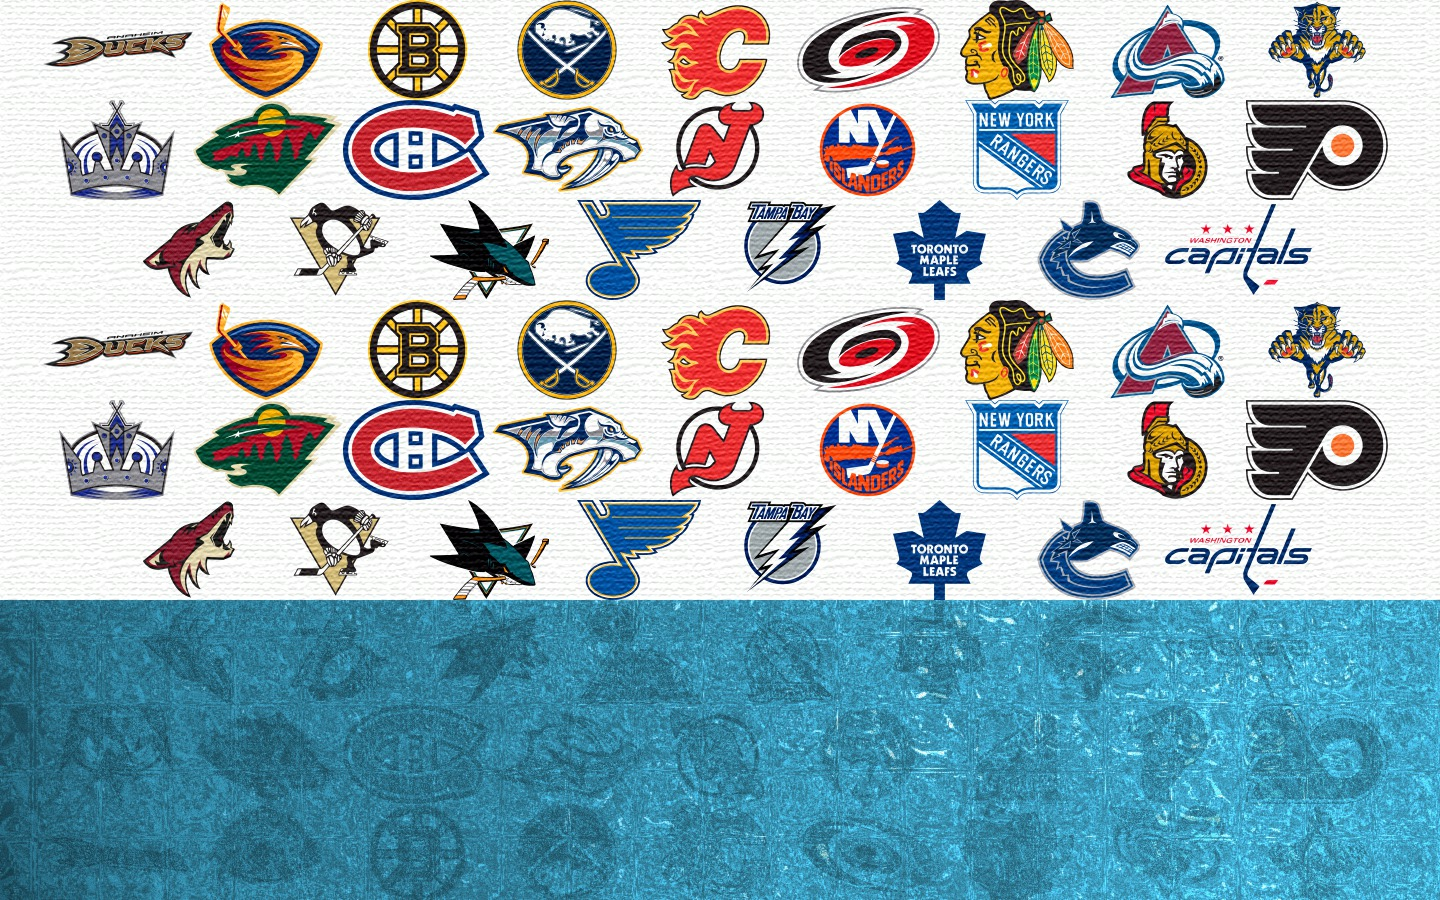 logos de la lnh Wallpaper   ForWallpapercom 1440x900